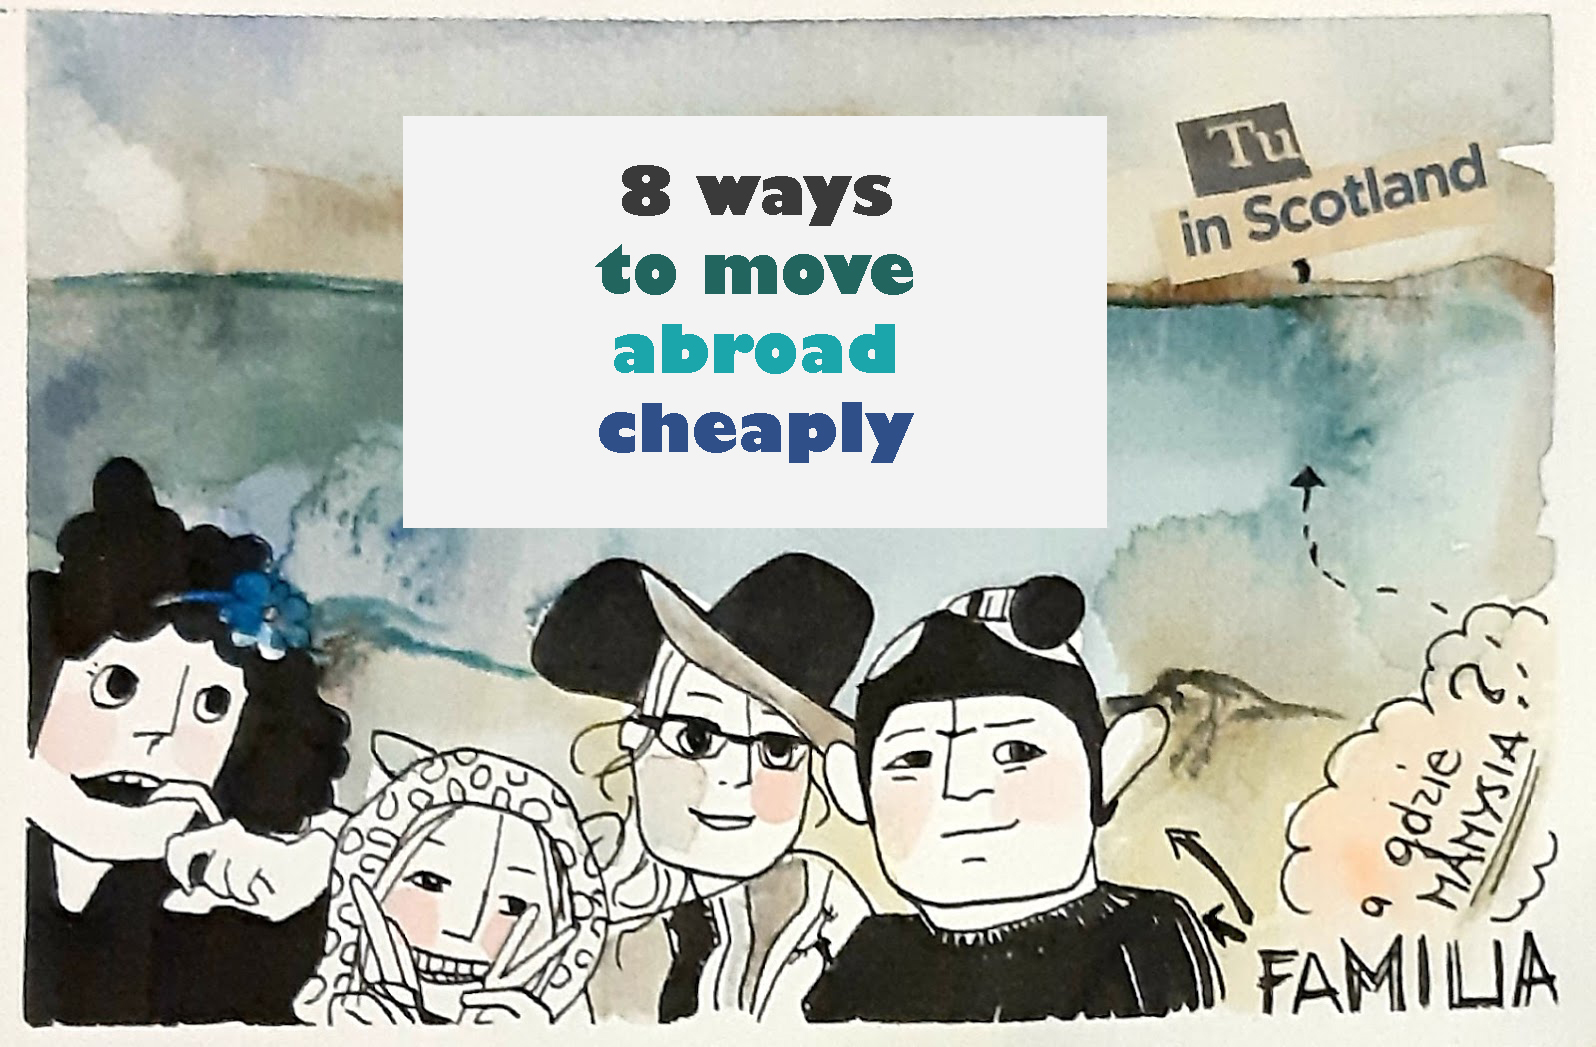 8 ways to move abroad cheaply